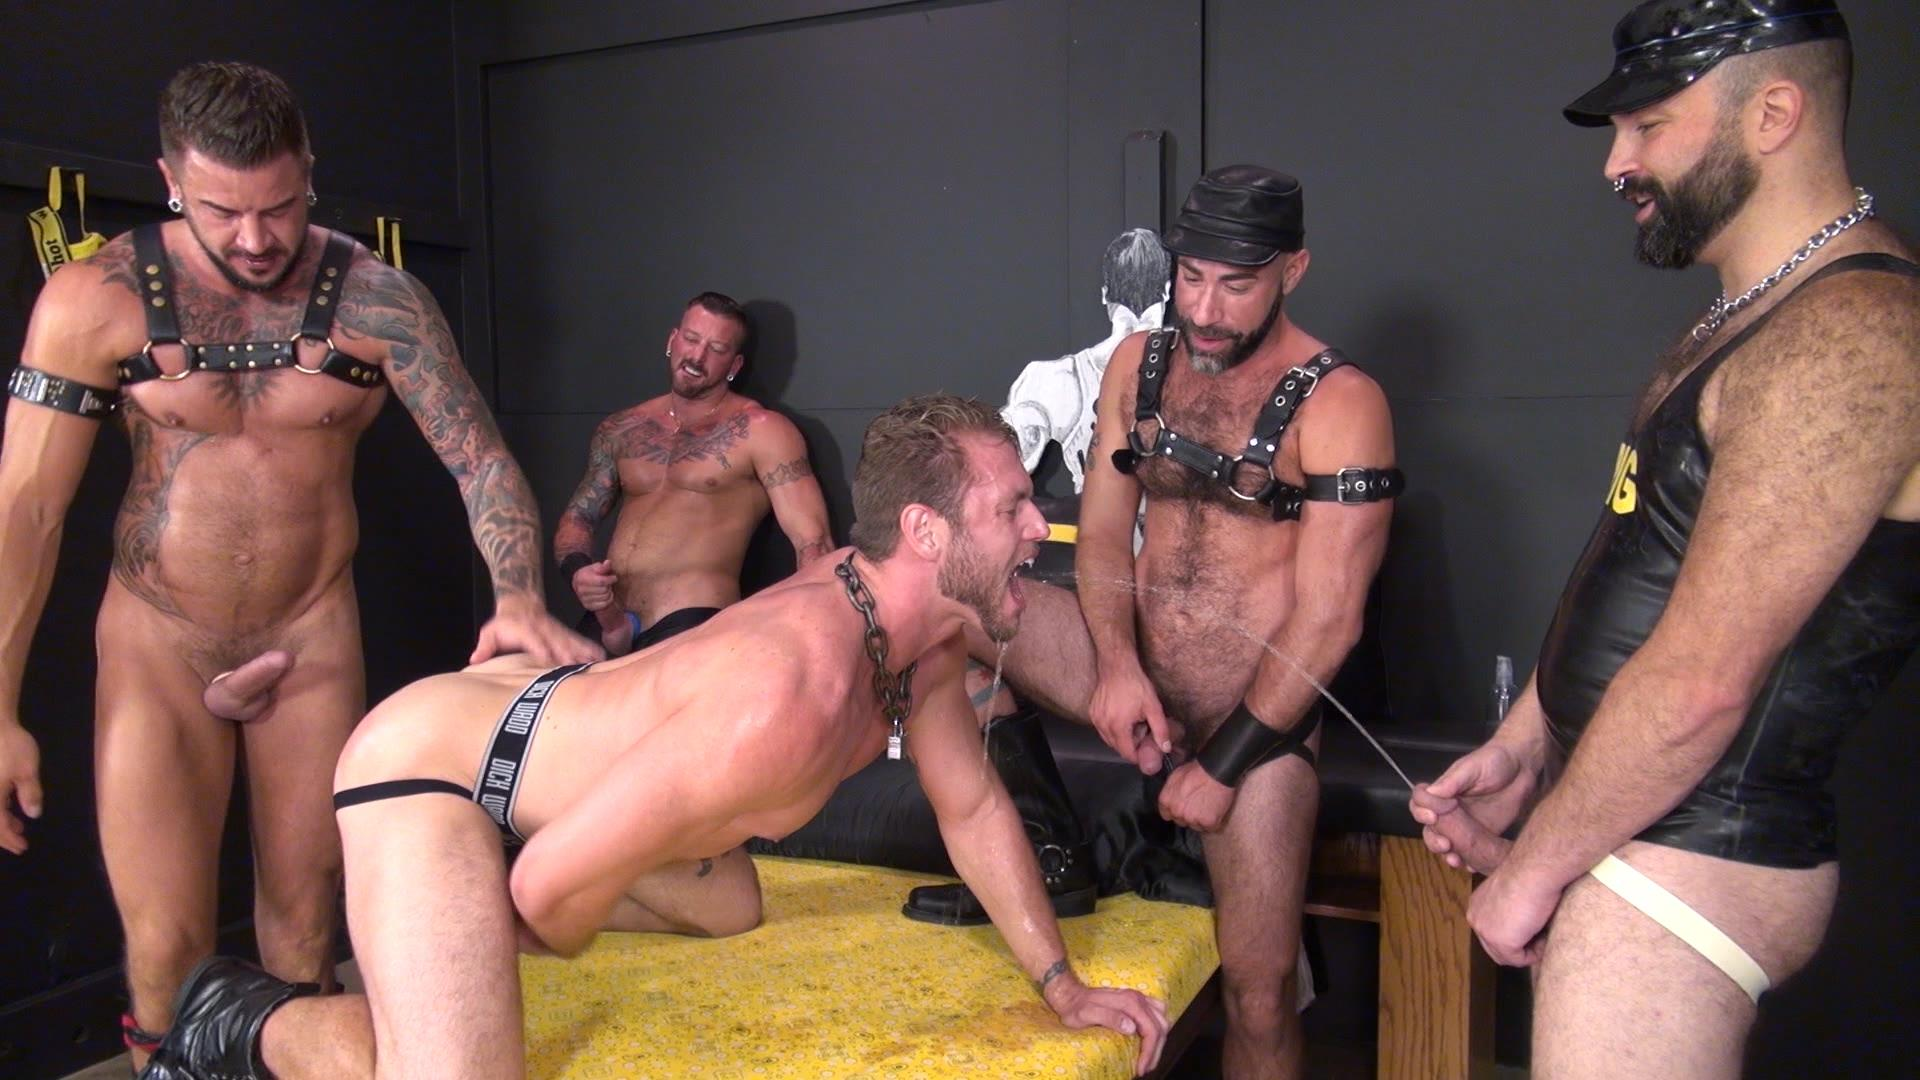 Raw-and-Rough-Boy-Fillmore-Dolf-Dietrich-Damon-Andros-Hugh-Hunter-Ace-Era-Free-Gay-Porn-08 Bareback Fuck And Piss Party At An Underground Sex Club